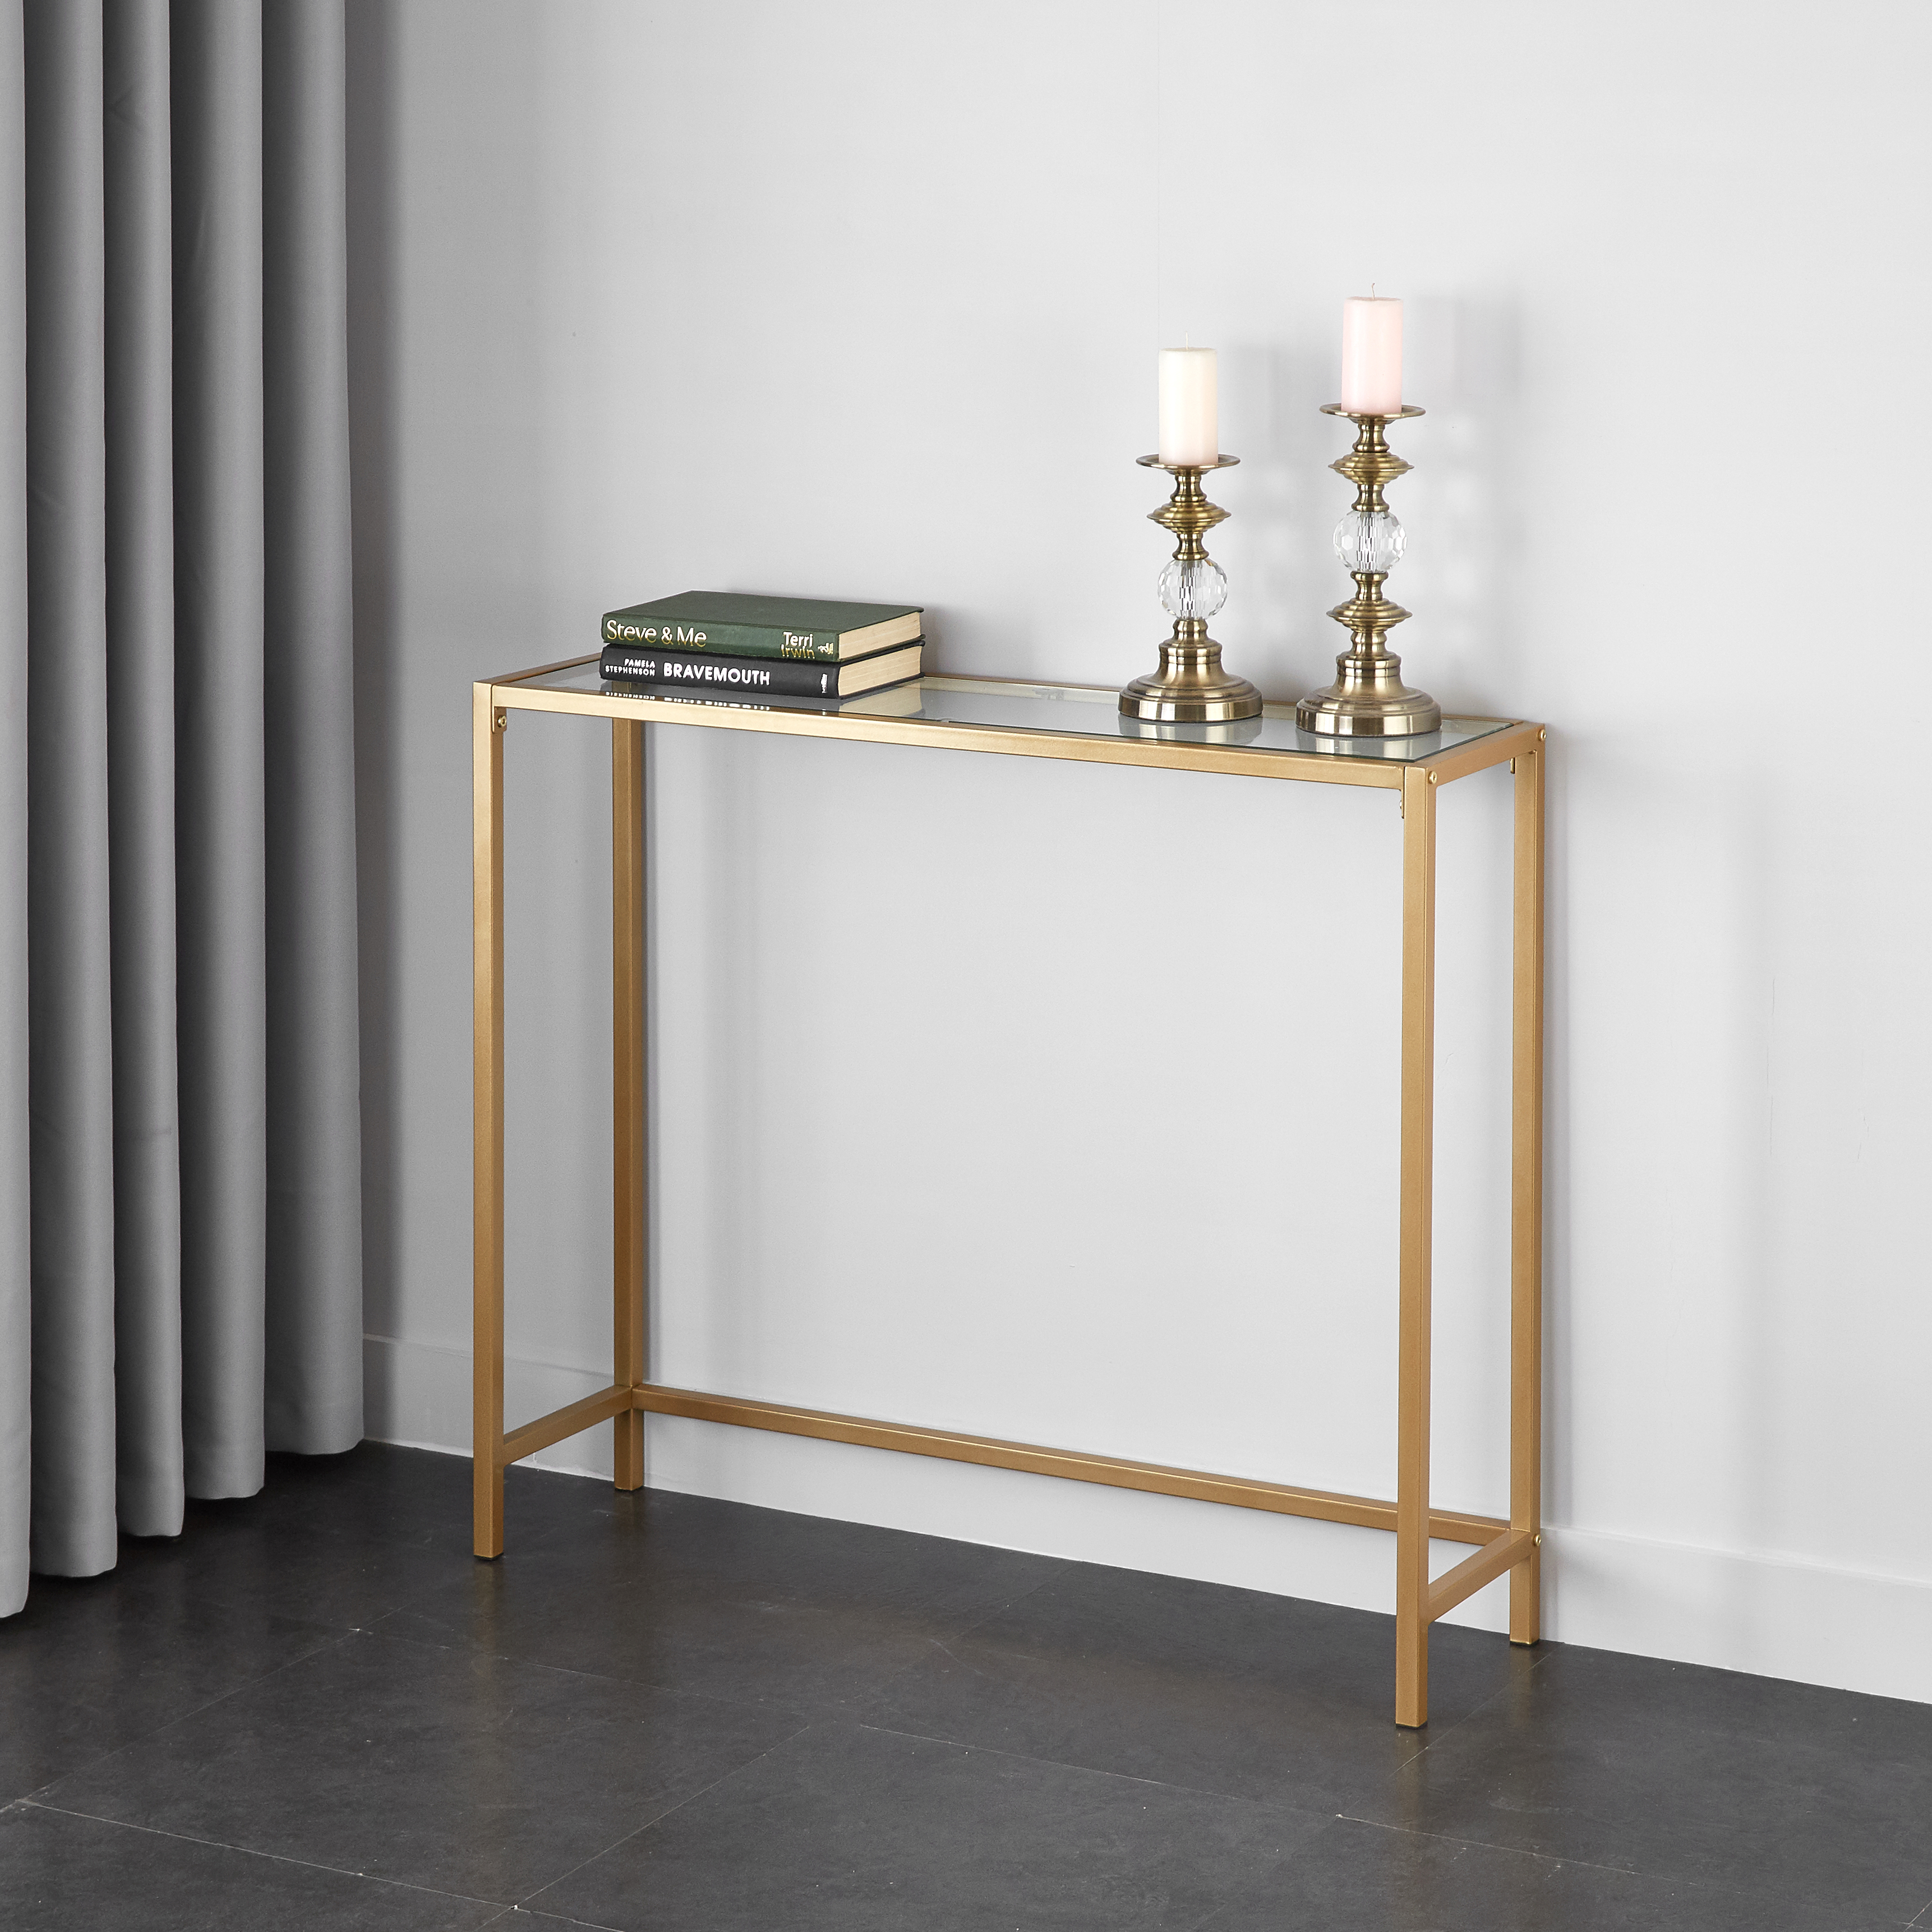 mainstays tempered glass and metal console table collection gold accent square end behind couch mirrored coffee set trestle dining room bohemian nursery changing unique entryway